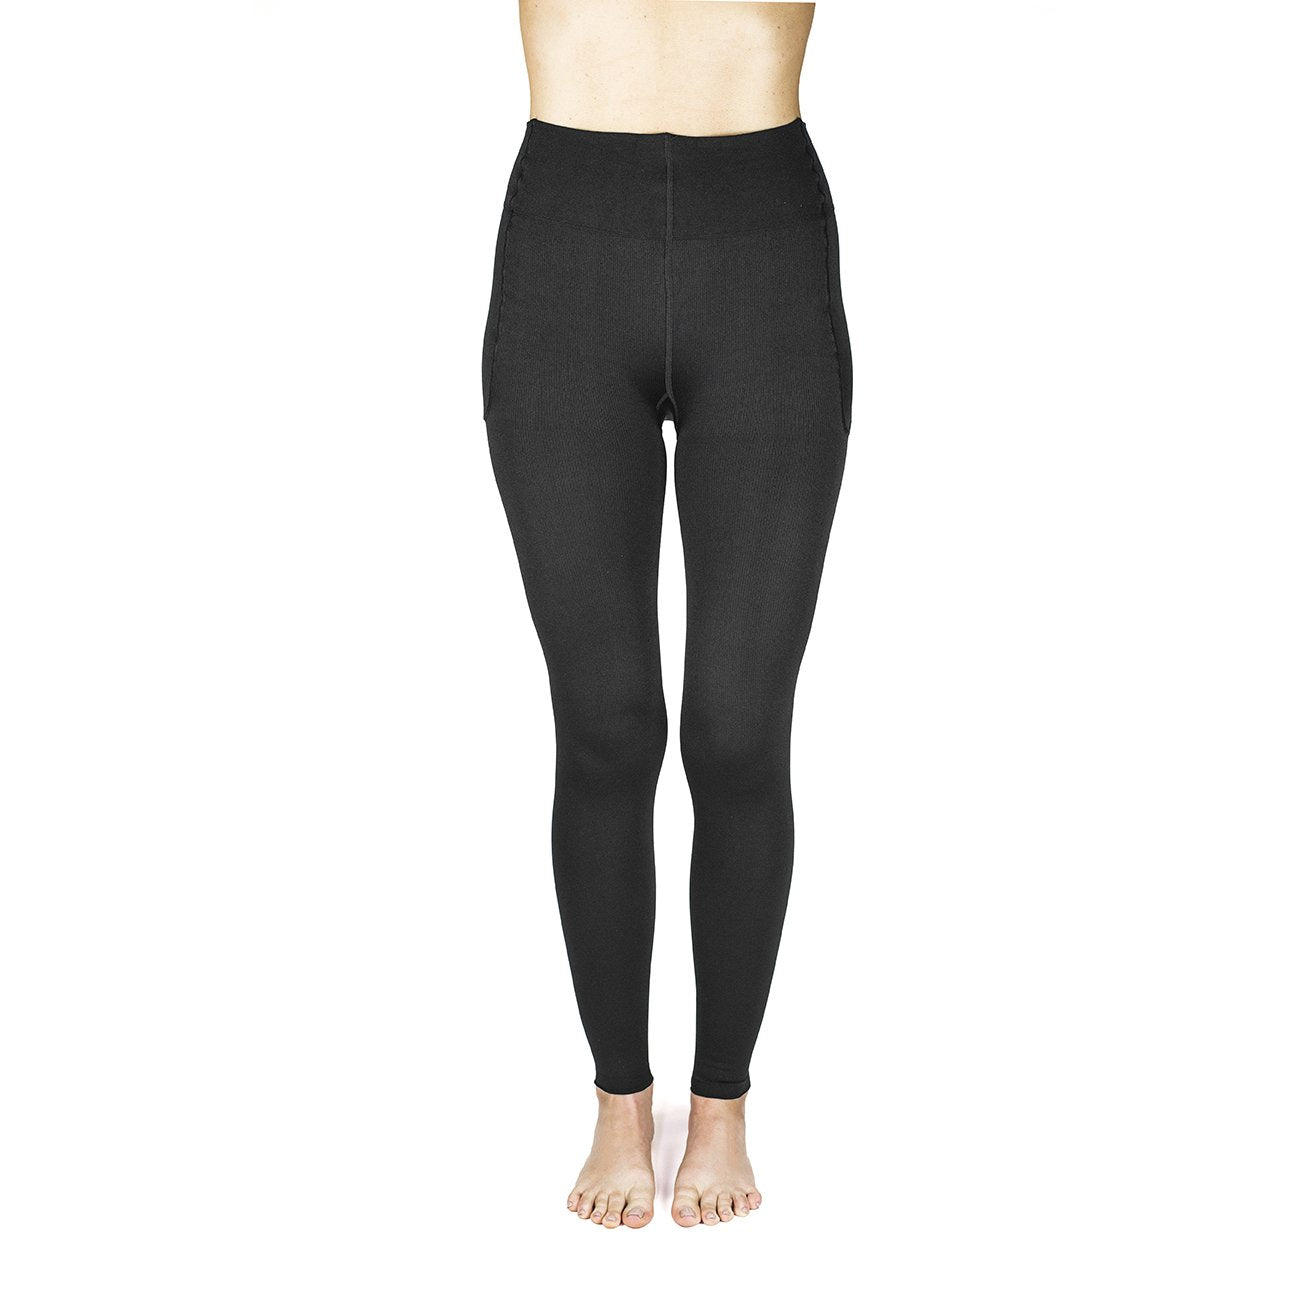 Rejuva Footless Compression Leggings 15-20 mmHg